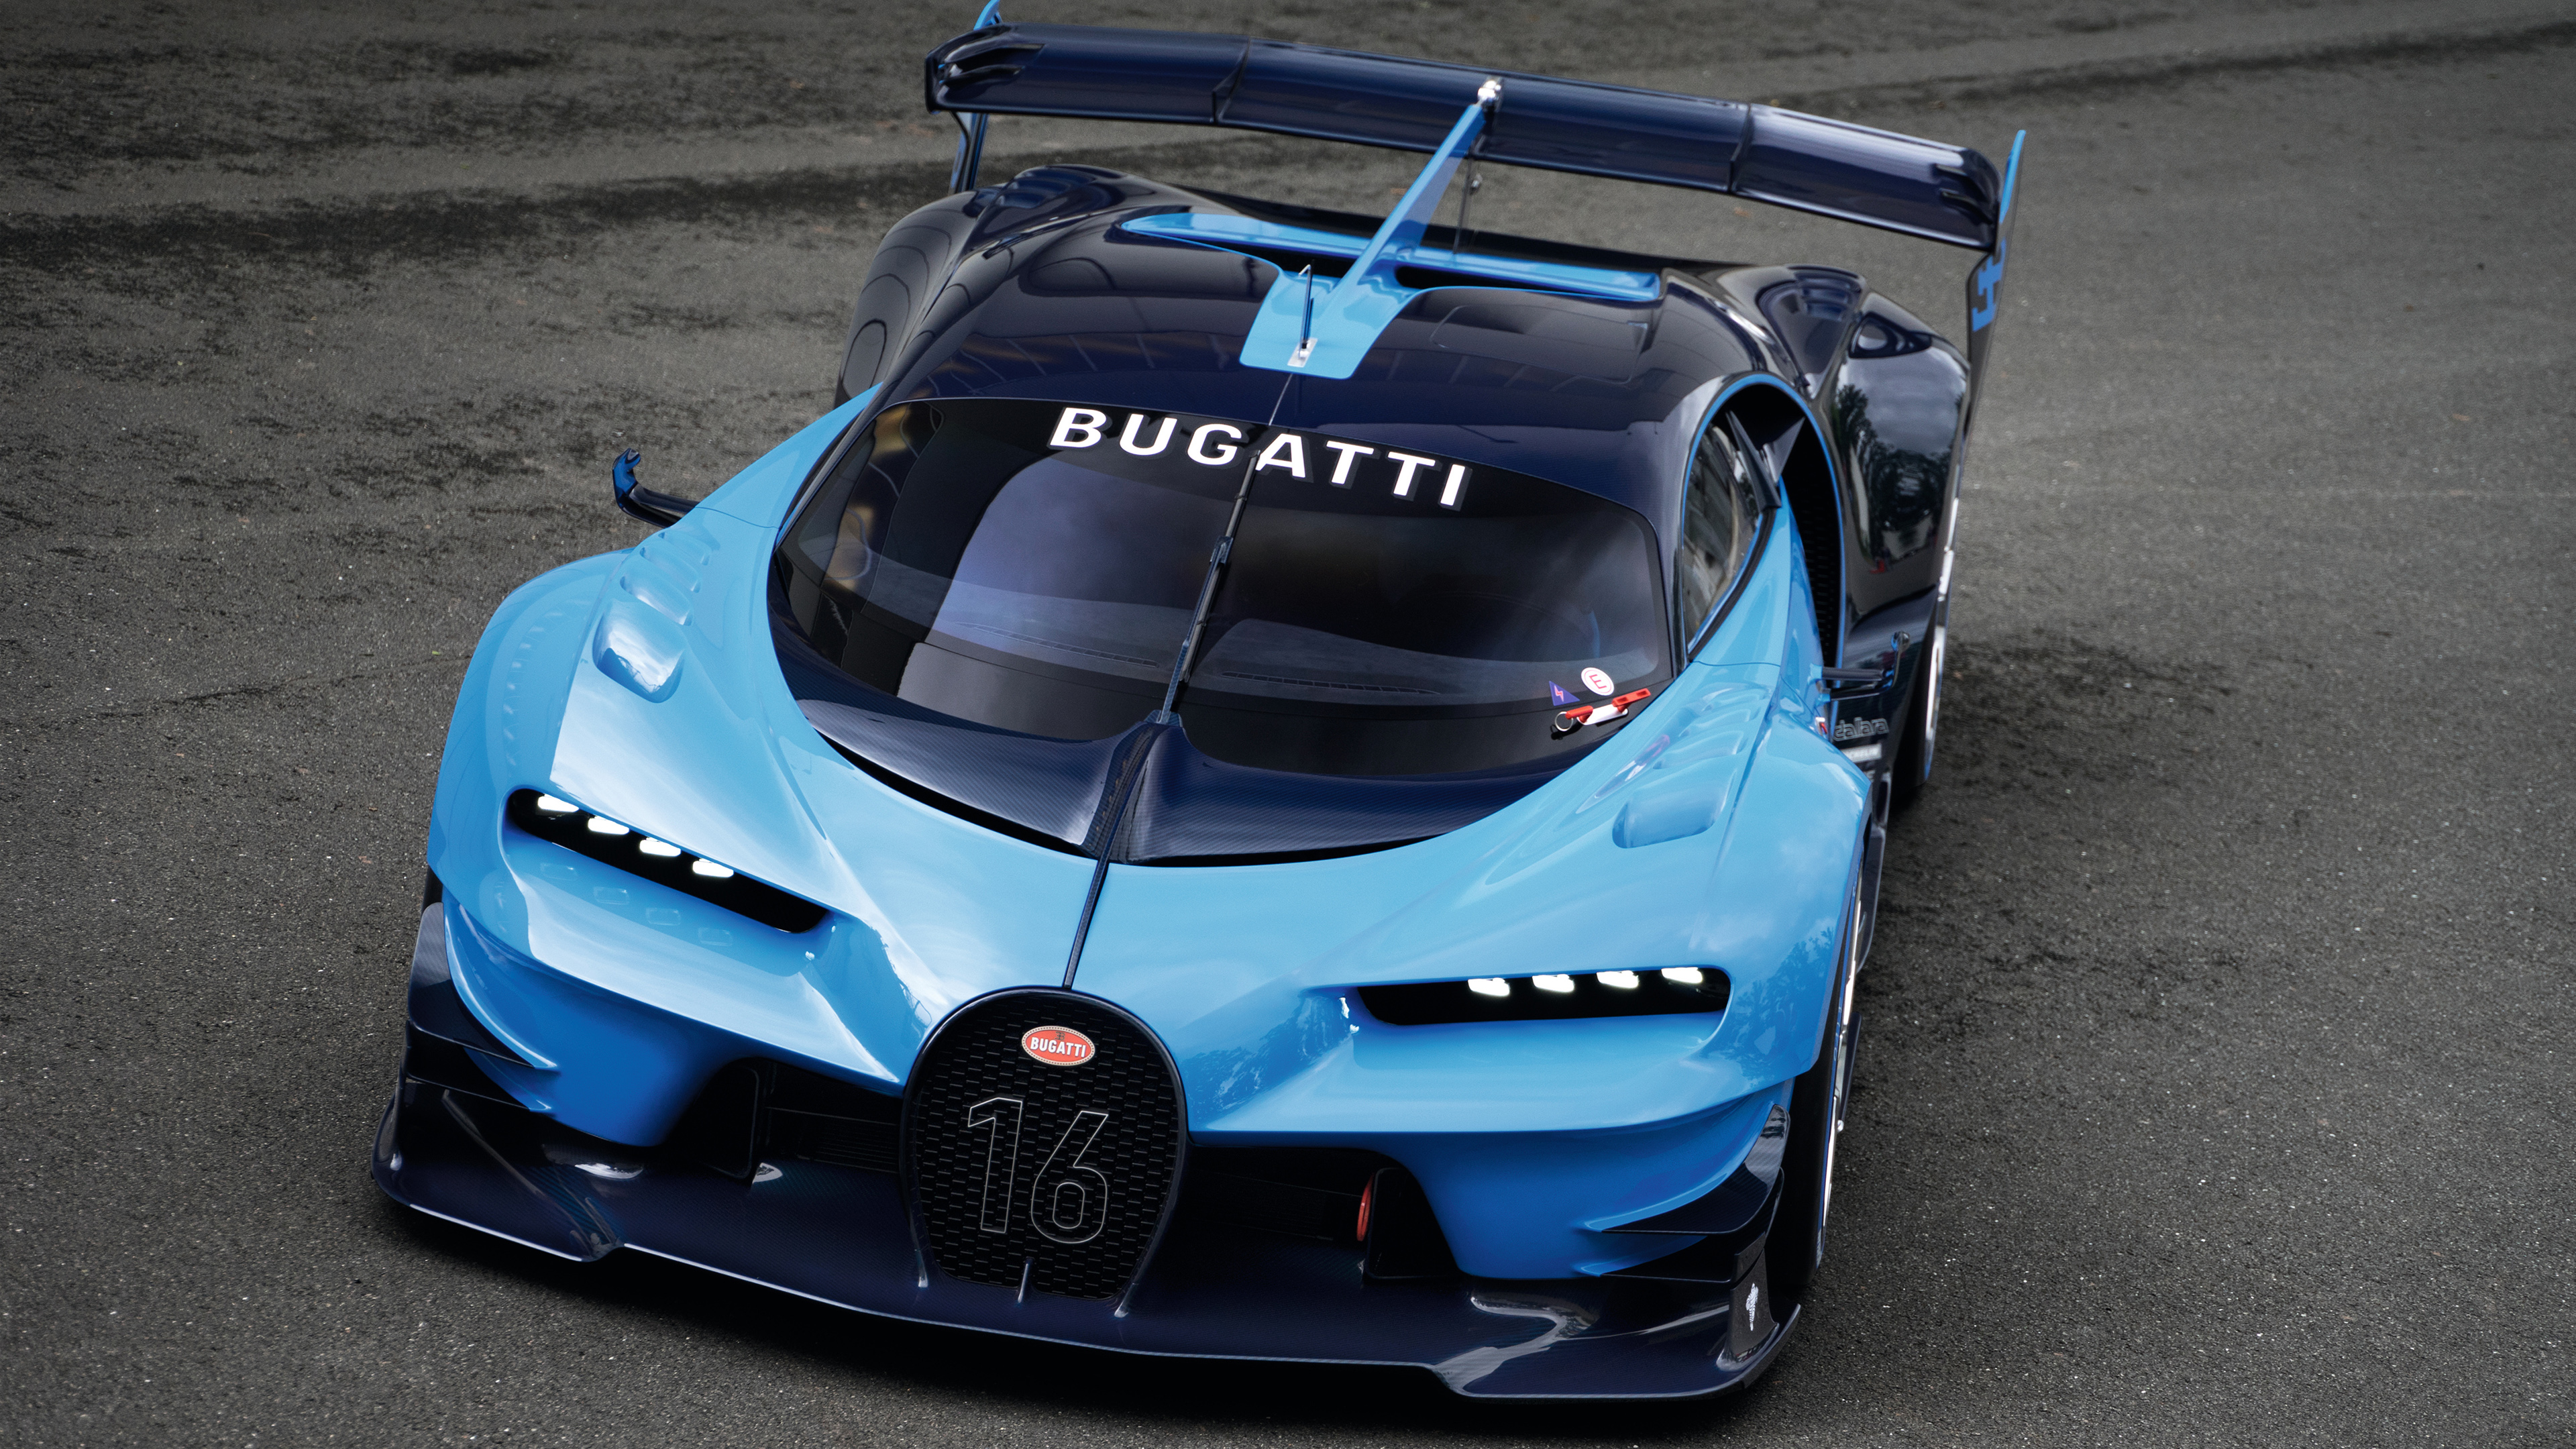 2015 Bugatti Vision Gran Turismo 4 Wallpaper  HD Car Wallpapers